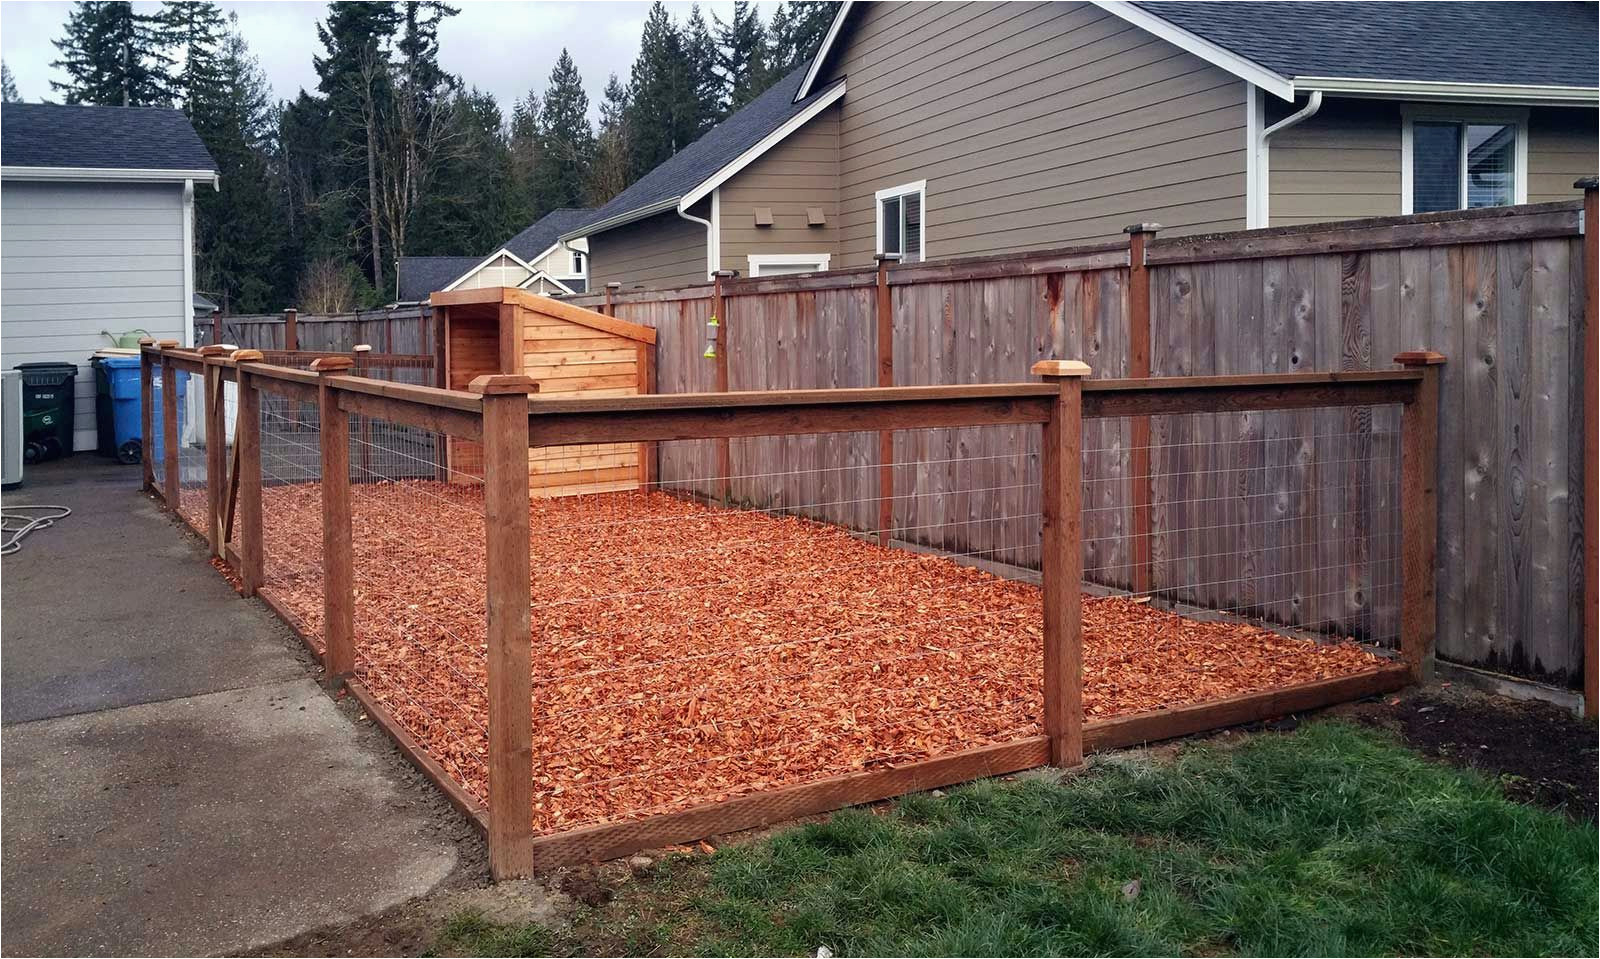 Diy Dog House With Fence 911stories for 11 Awesome Ways How to Build Backyard Fences For Dogs